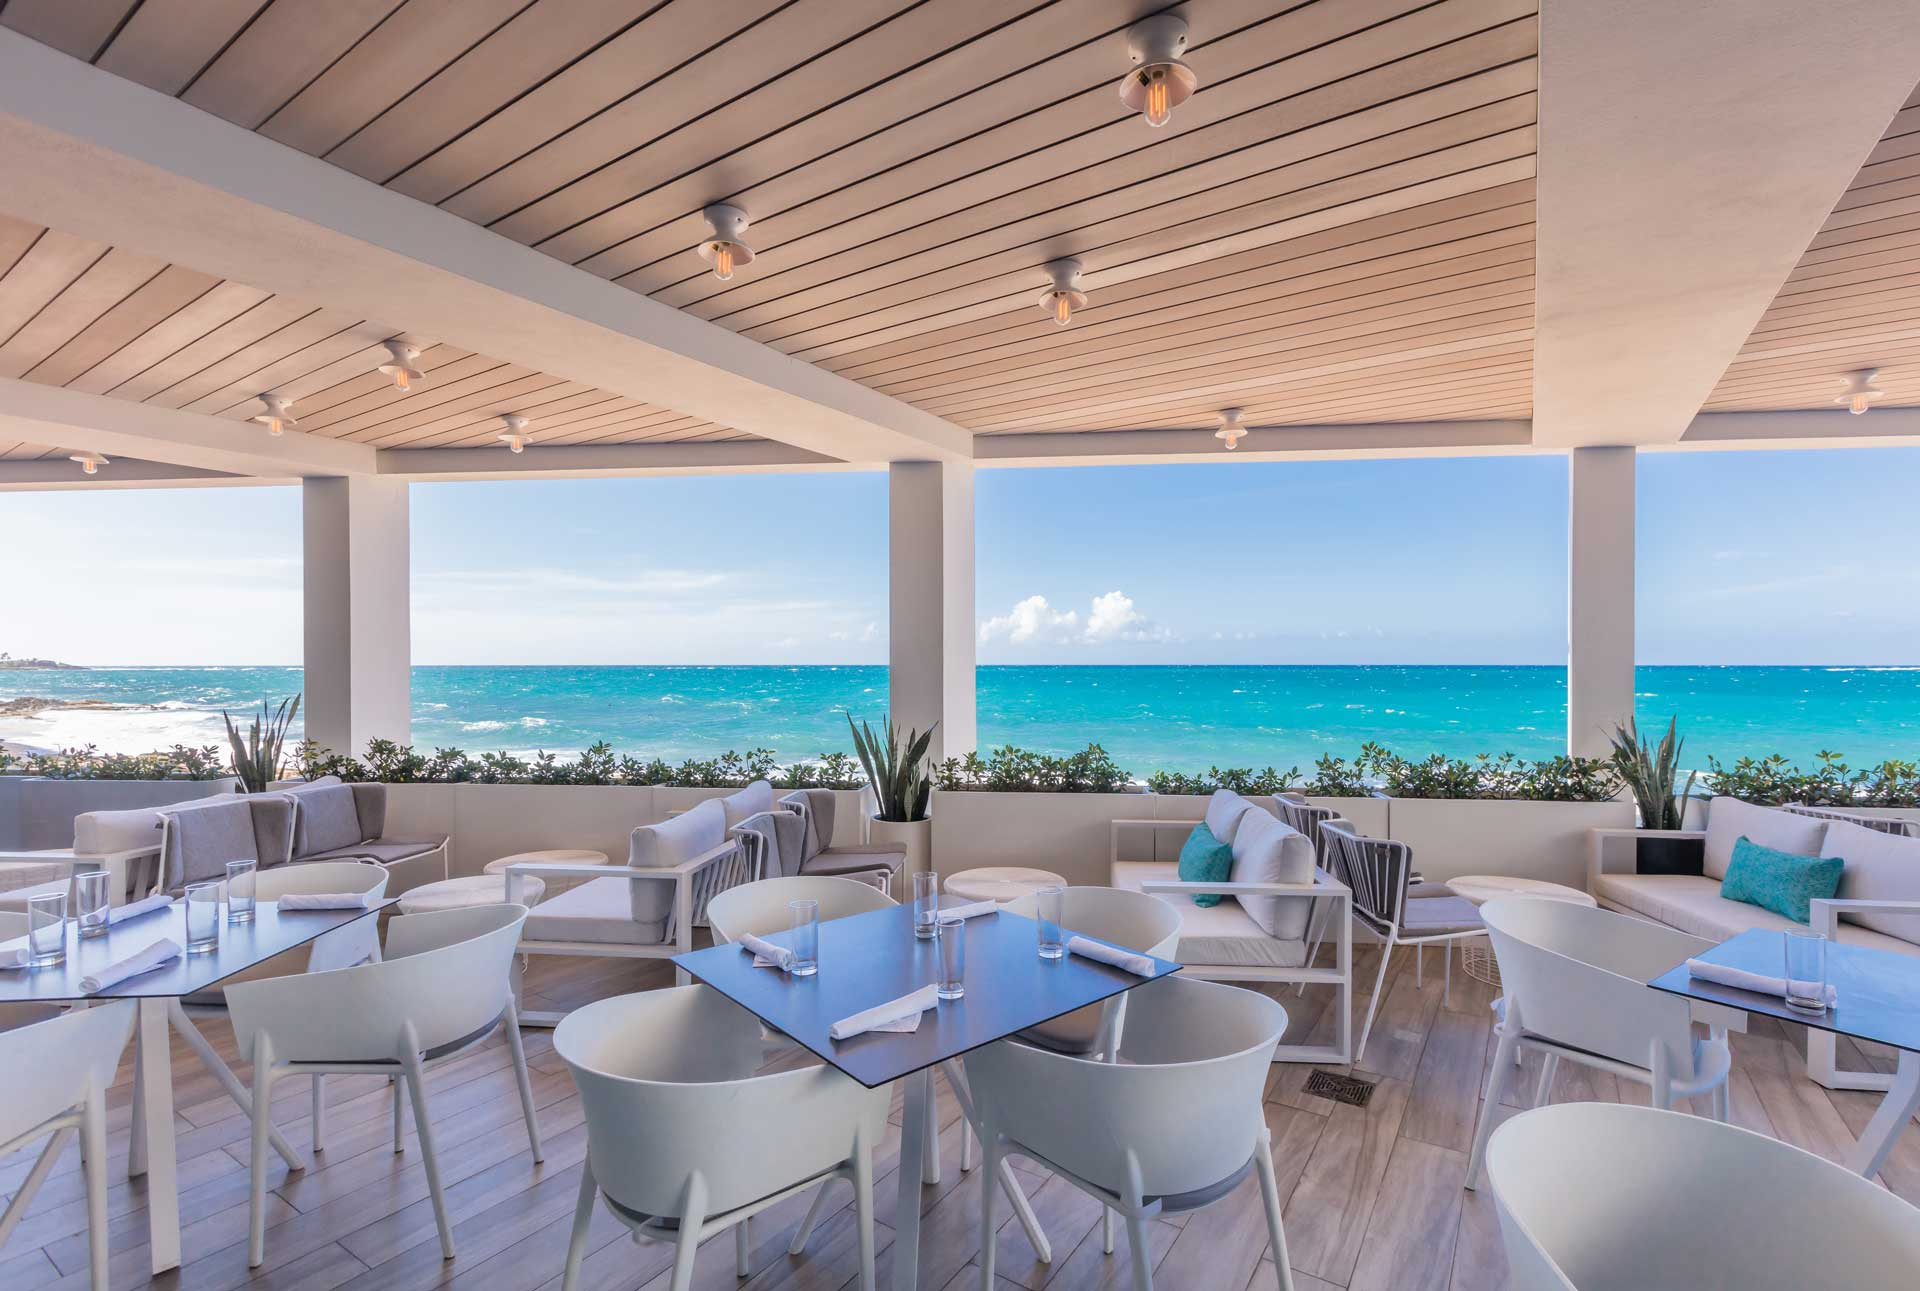 An outdoor covered dining area with ocean views